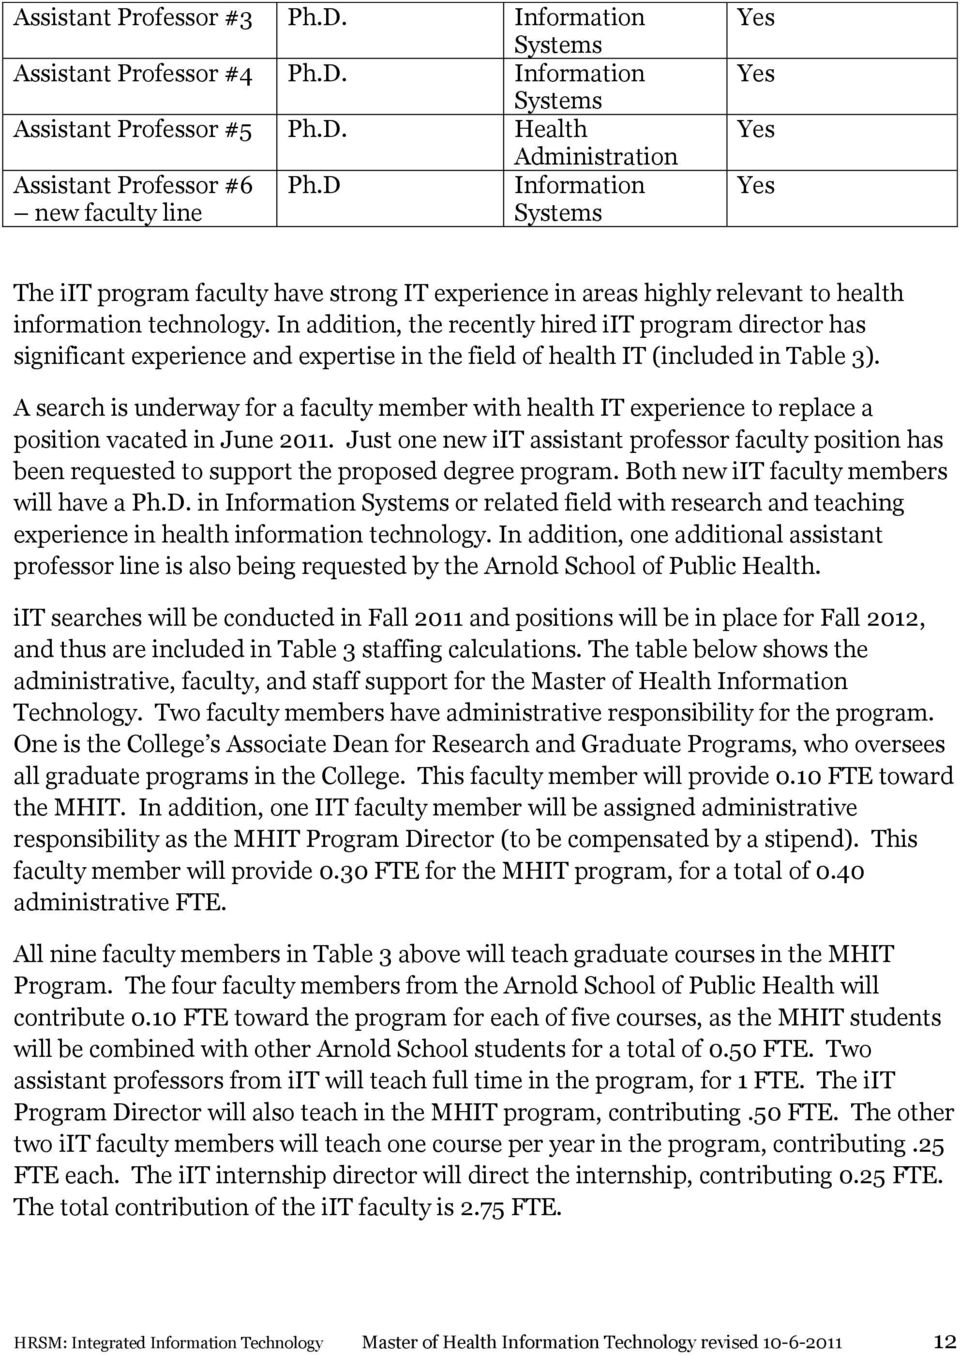 In addition, the recently hired iit program director has significant experience and expertise in the field of health IT (included in Table 3).